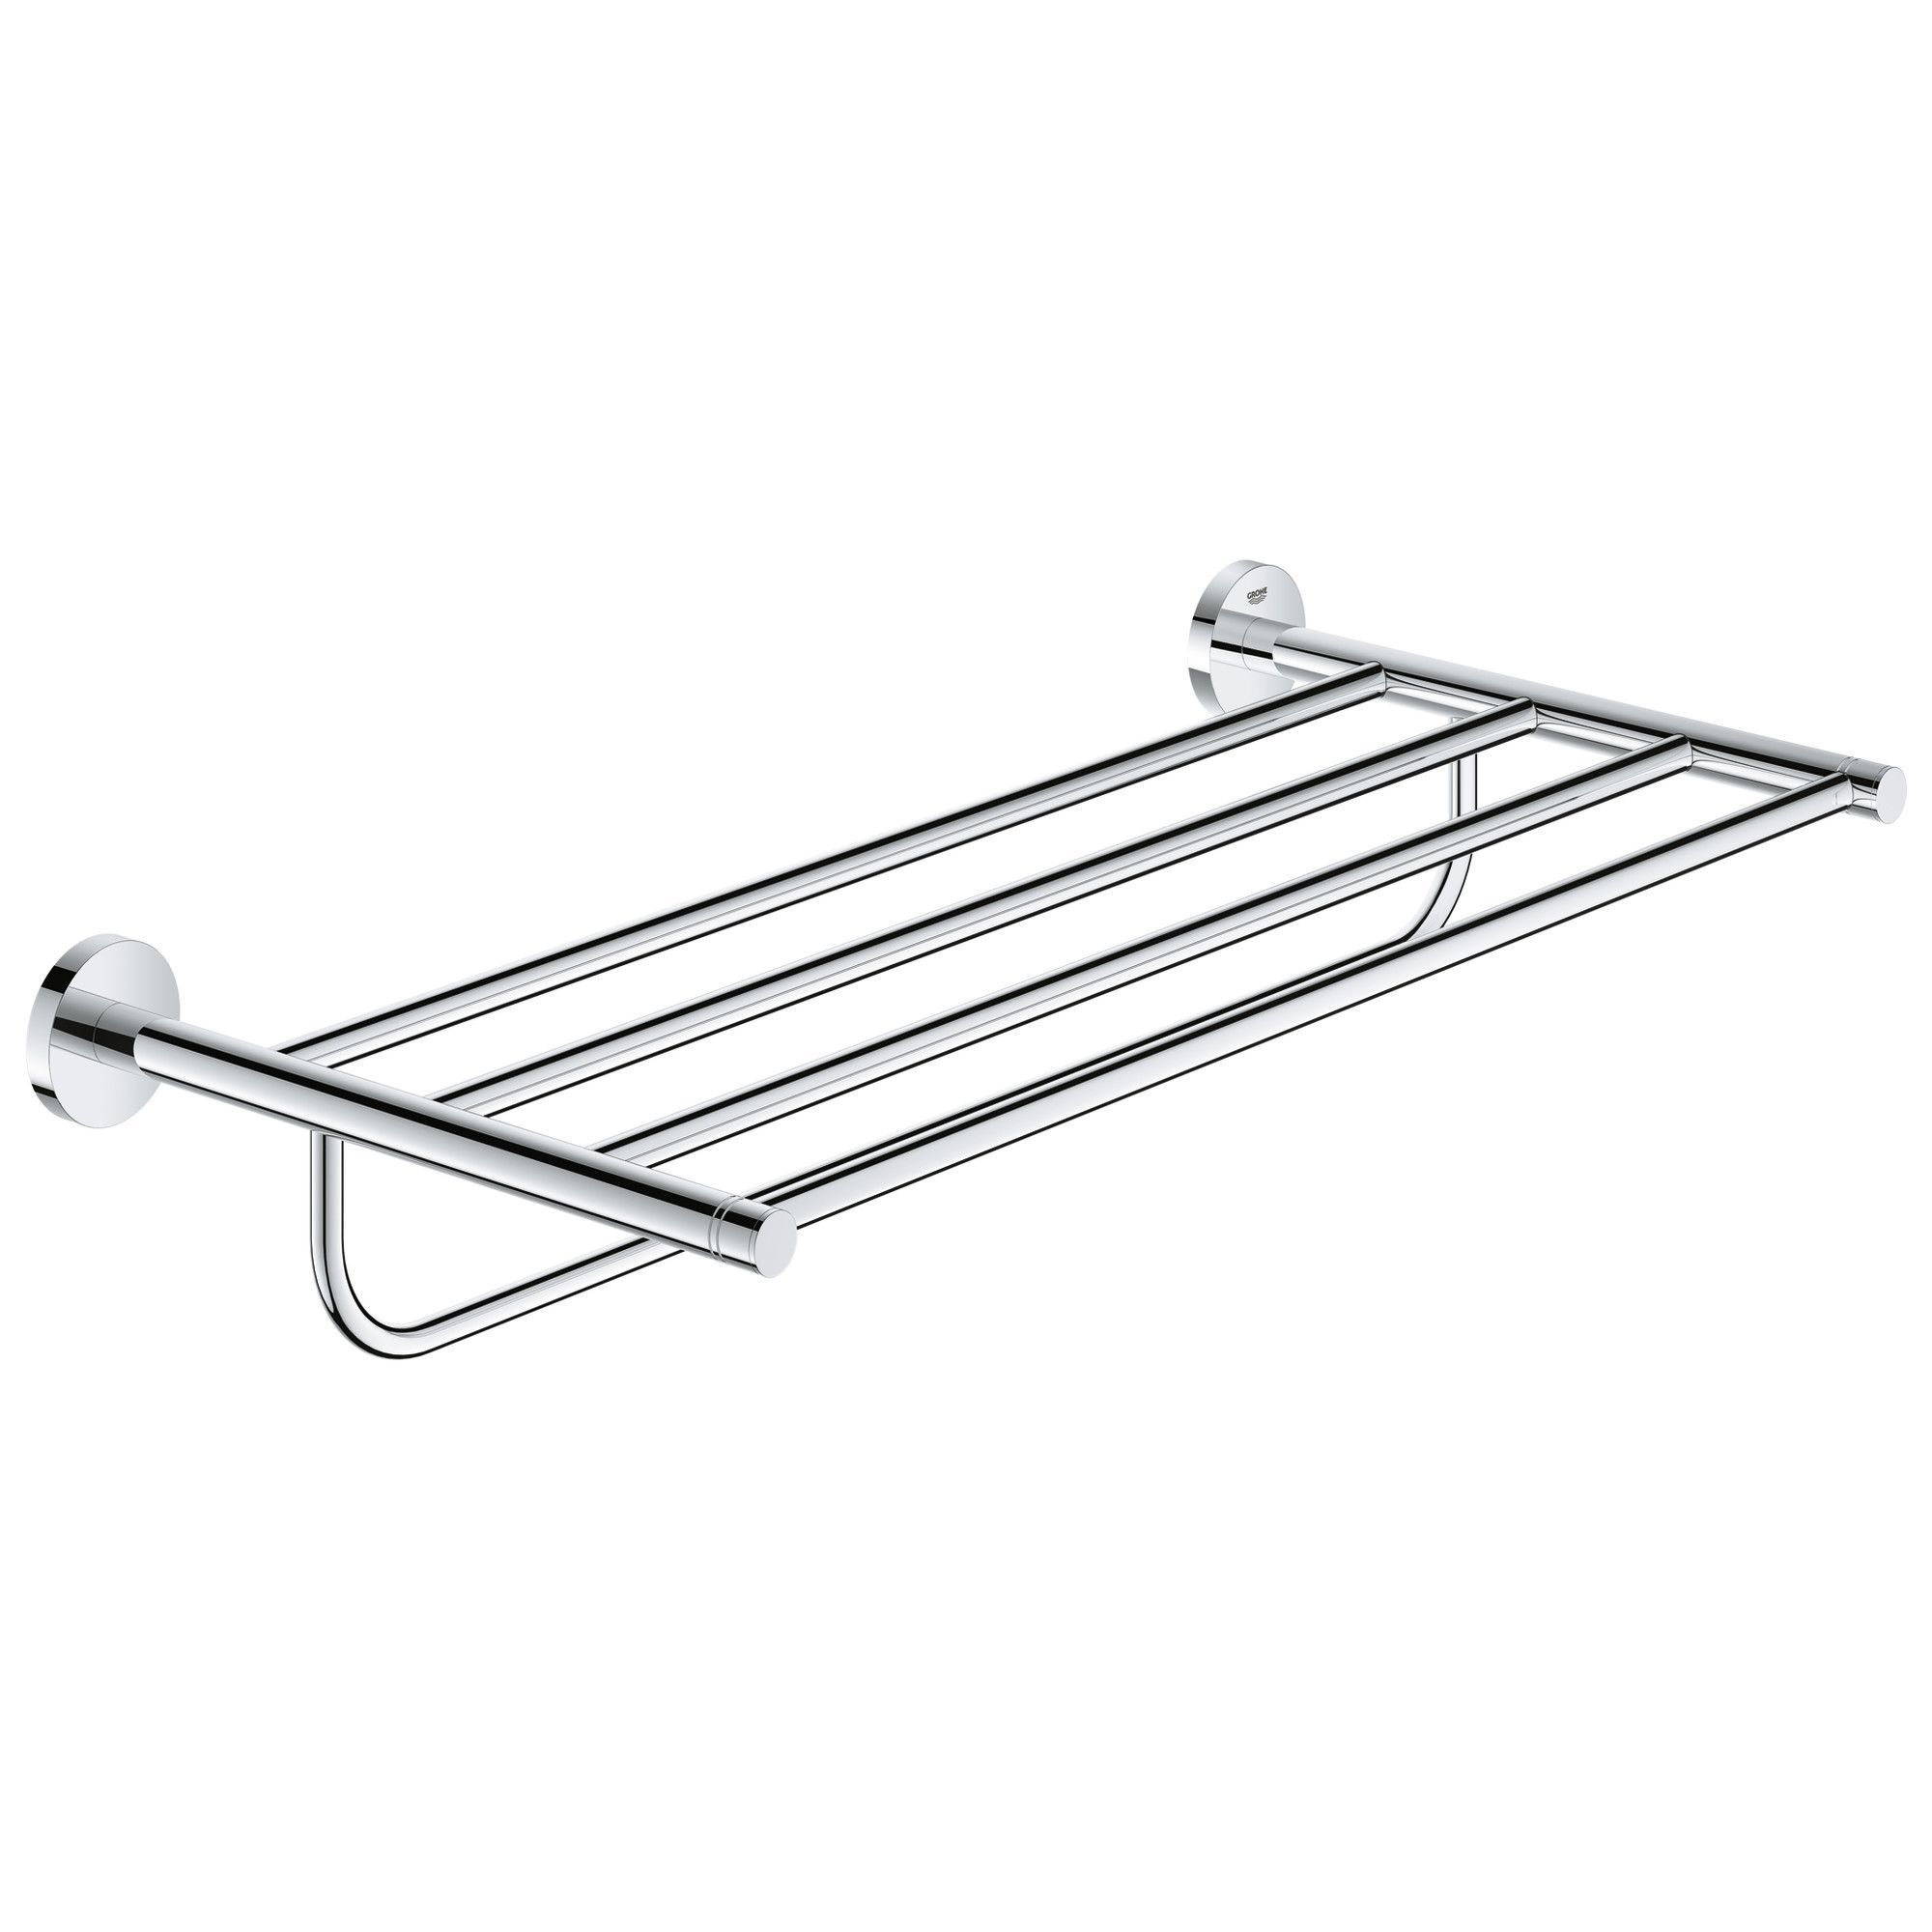 Essentials 22 Wall Mounted Multi Towel Rack